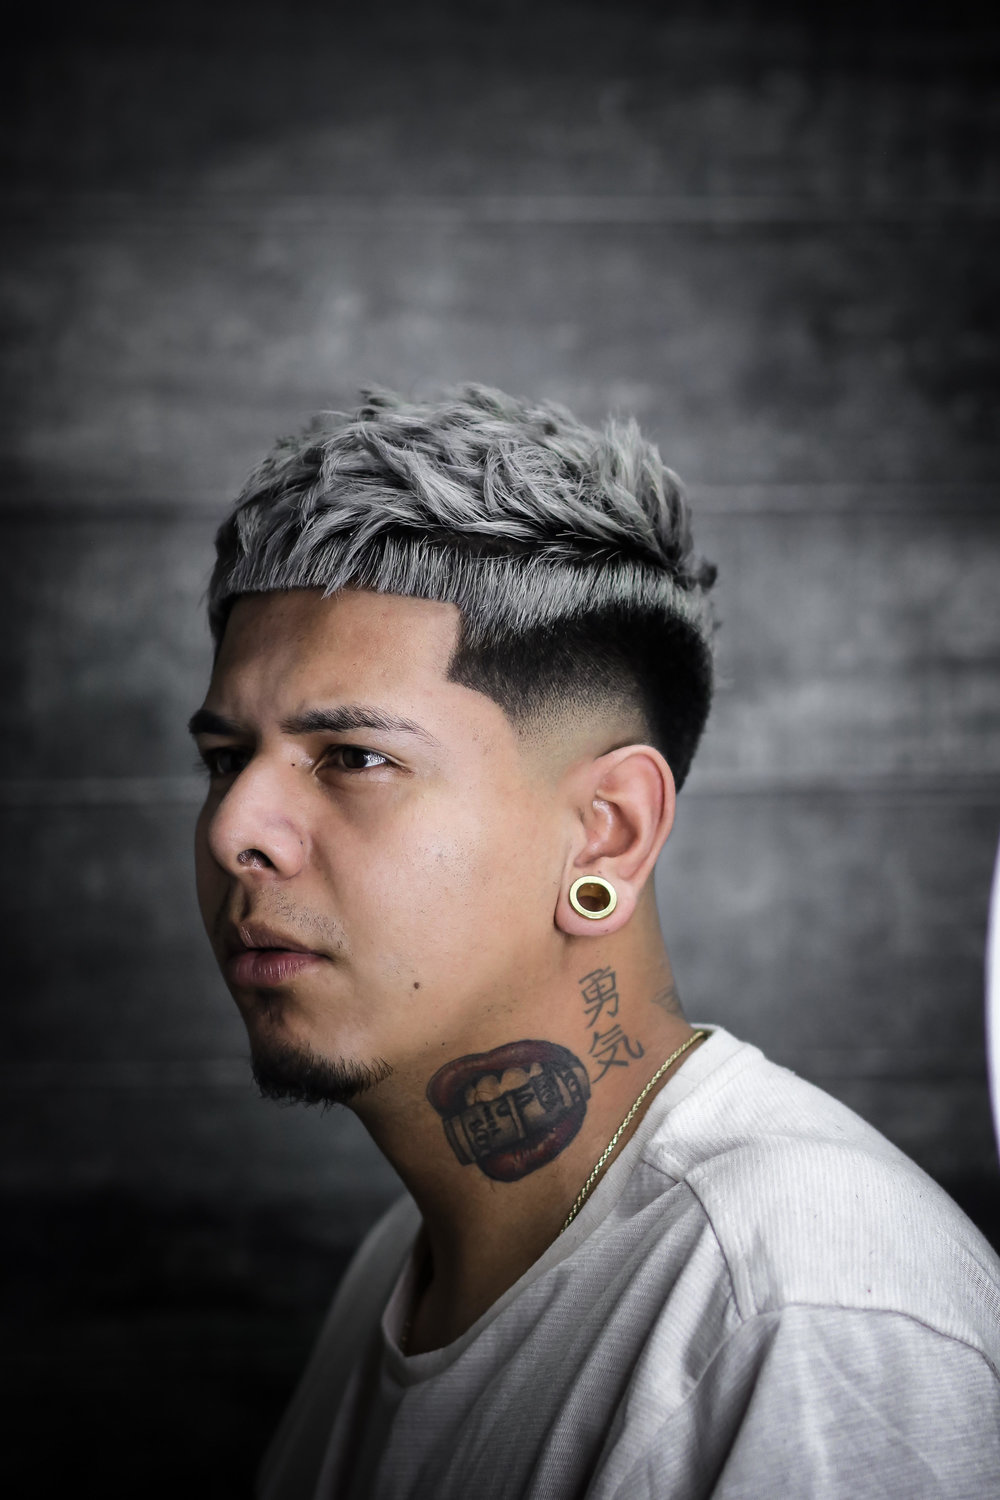 Steve Olivares - My name is Steve Olivares known as @Stevestylesyou_ in instagram located in Los Angeles California. My inspiration to become a barber/stylus came from the freedom of creativity, art , and fashion . Being around a barbershop weekly was eye opening because I saw how each person was themselves and that's something I always wanted to do . Being able to create amazing hair pieces and enjoying it was something I fell In love with coming in this industry I've been doing hair for almost 2 years being new in this industry is very frightening but I've managed to get as much education from the people I surround myself with and I'm always eager to learn new things . In the next five years I see myself as a world wide educator and motivation speaker for upcoming barbers / stylist . Working with a brand that'll not only represent the type of barber I am but also help me rise in my career . I've been blessed get an opportunity to work at House of Fade Barbershop with not only my mentor but my motivation @diego_Djdgaf and the team . Thank you @sharpfade for giving me the opportunity to be apart of this years FreshMen Class . The best is yet to come .-SteveStylesYou